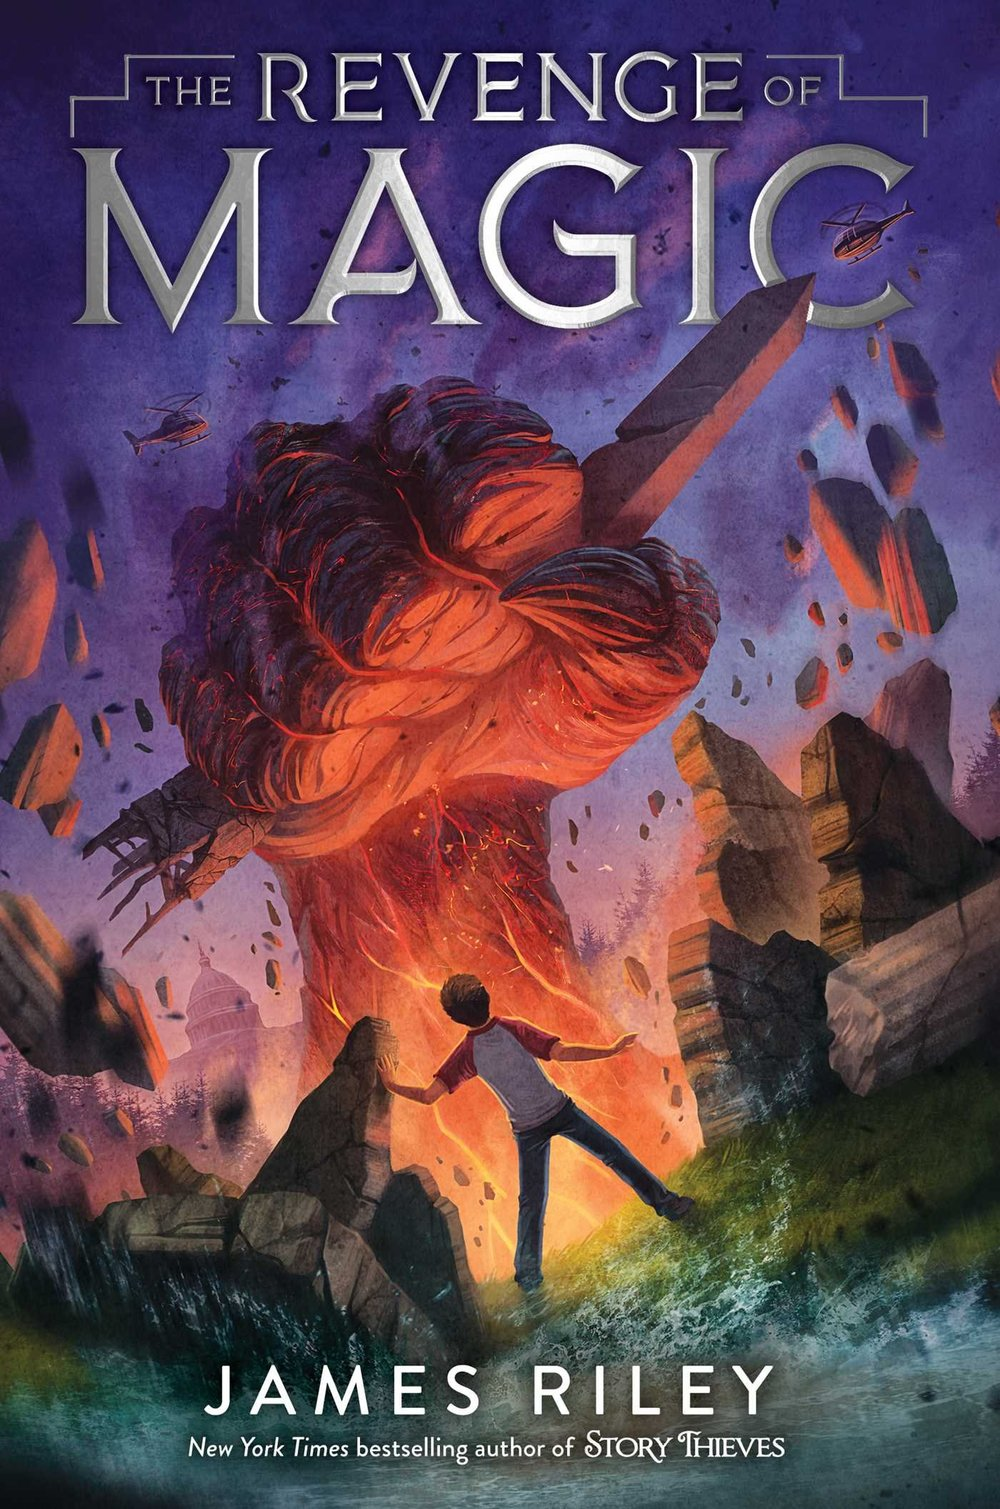 REVENGE OF MAGIC - Thirteen years ago, several books of magic were found all around the world. And the spells within them worked … for anyone born on the day they were found or after.The government is able to hide that magic is real for over a decade, until creatures that shouldn't exist attack Washington, D.C., and take Fort Fitzgerald's father. All Fort wants is revenge, but instead, he's offered a spot in a government-run school for magic. This could be his chance to find the power he needs to get justice for his father, if he can survive the Oppenheimer School.